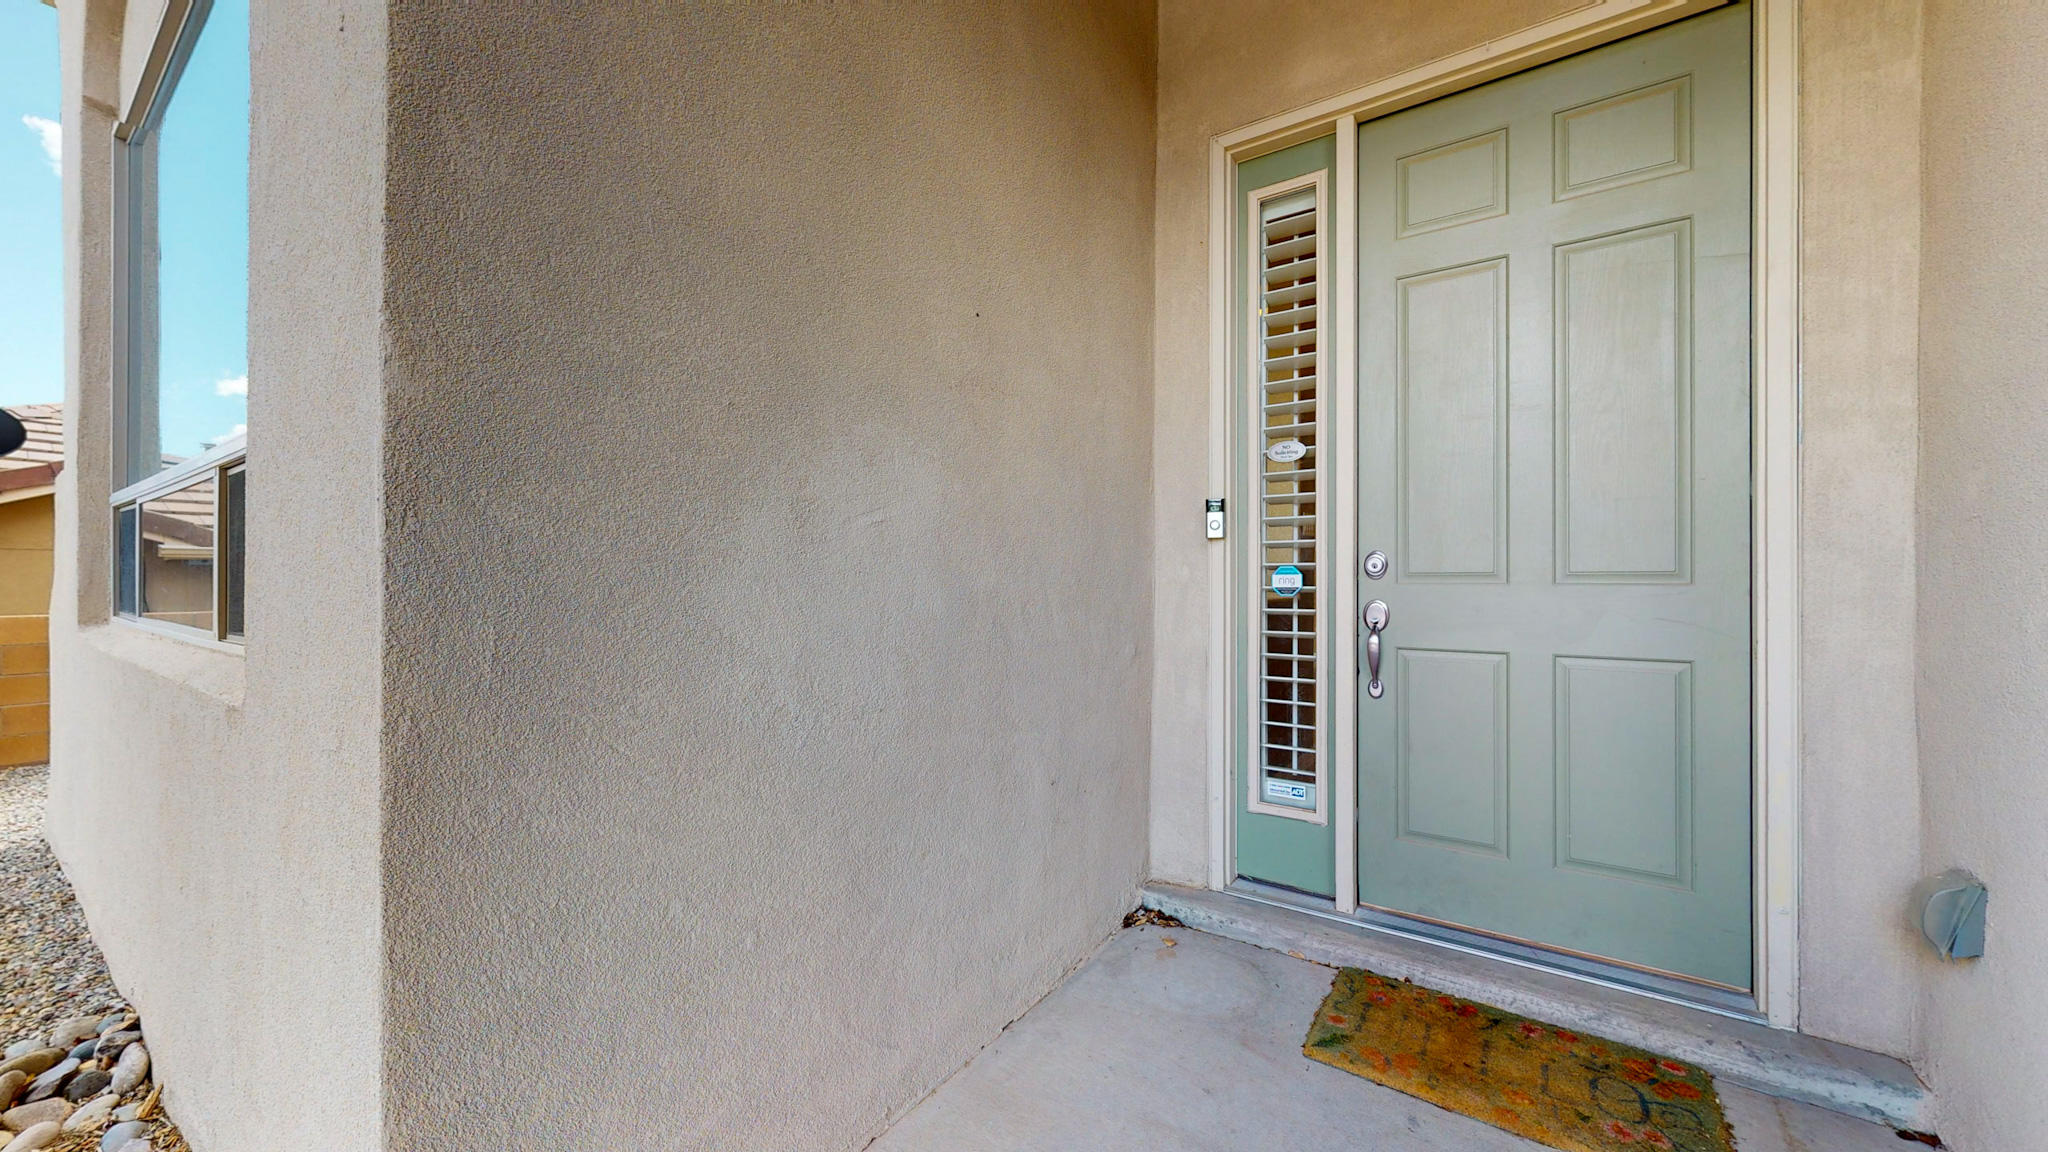 Come visit this wonderful home with upgrades this stunner offers. Conveniently located in Diamond Ridge Estates, this home offers an abundance of space & storage with 2 living areas, a loft & 3-car garage! The gourmet kitchen will delight you with gorgeous cherry cabinetry, crown molding, quartz countertops, large island (with additional storage), built-in oven & microwave, & gas cooktop. Plantation shutters throughout are icing on the cake! Lots of living space on the 1st floor including a lovely guest room. Master suite has beautiful built in cabinets & drawers. It leads to a spacious bathroom with separate vanities, jetted tub, & shower. The perfectly sized loft is ideal for an office space or game/play area. Gas stub out for your grill and gorgeous backyard are a must see